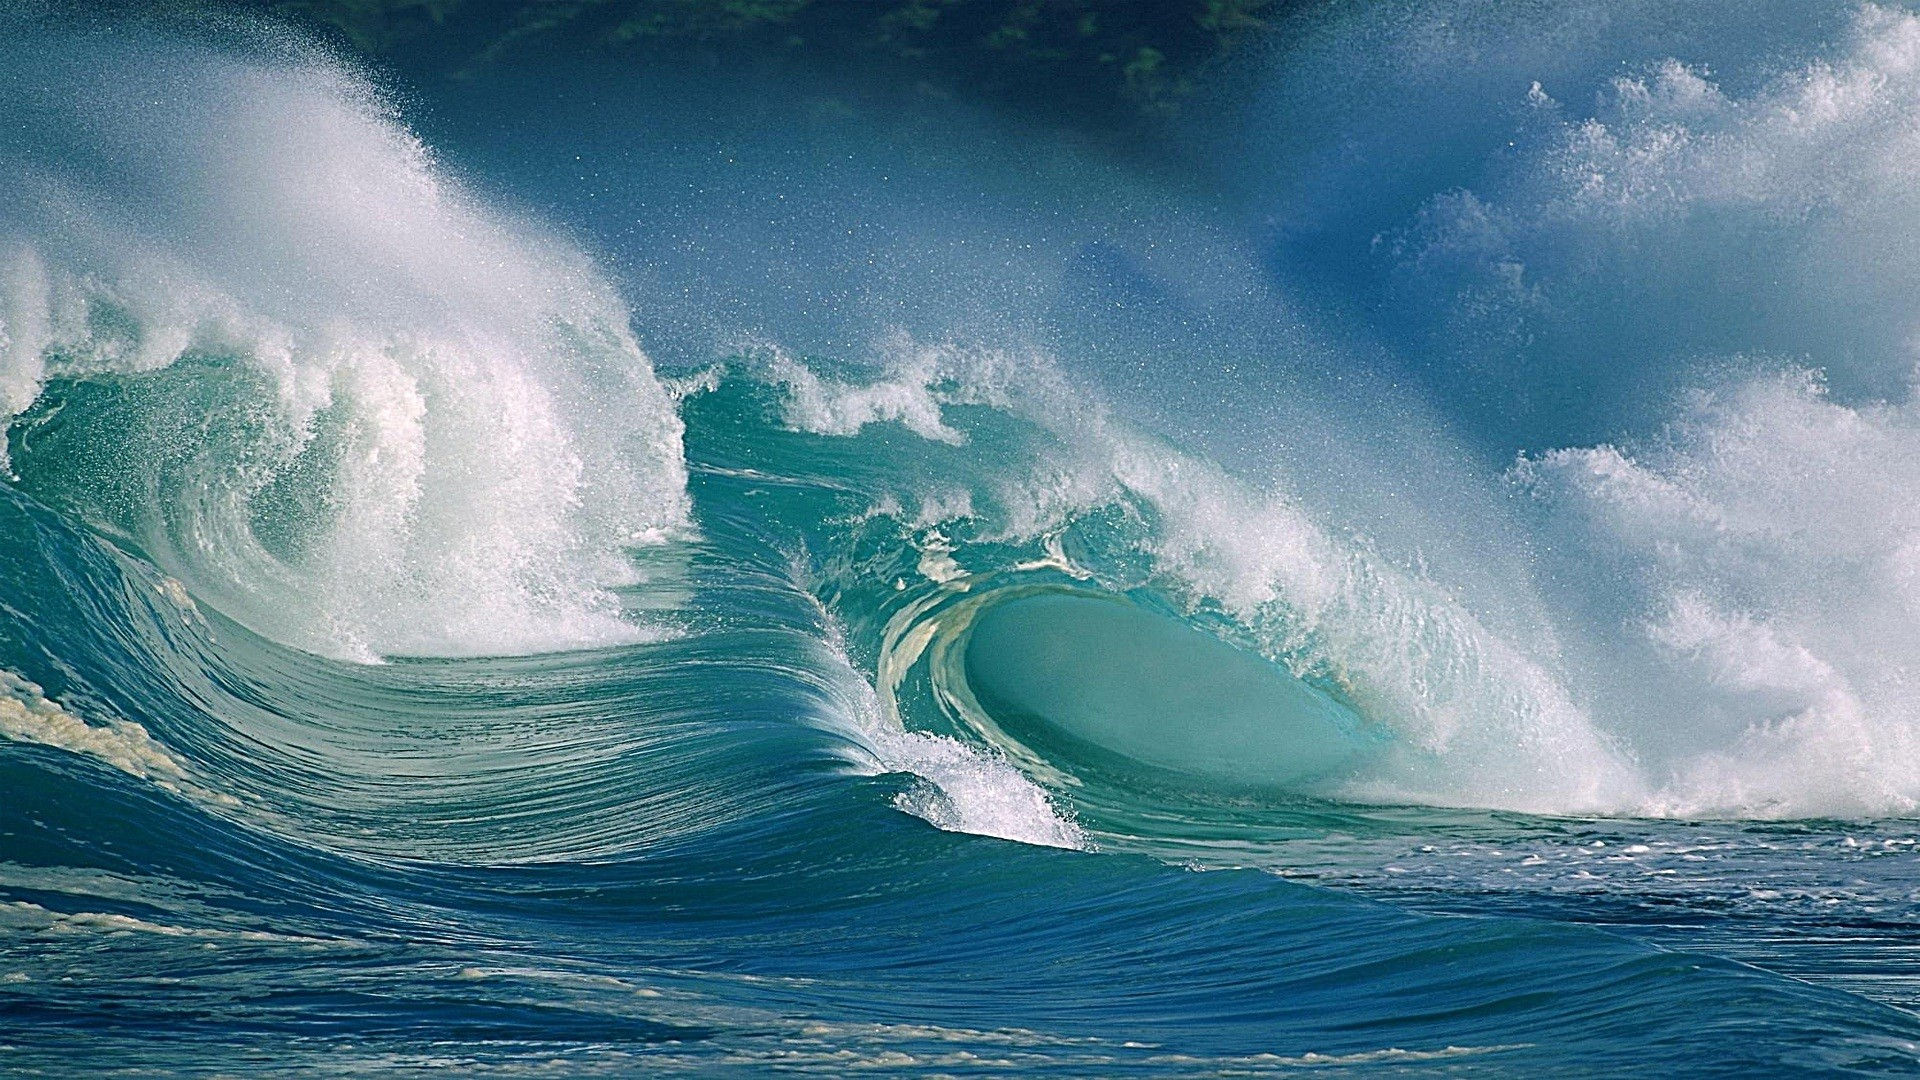 Tsunami High Quality Hd Wallpapers Hdq 1080p Kqn74kqn Awesome Wallpaper  Pack Free Download. boys rooms …